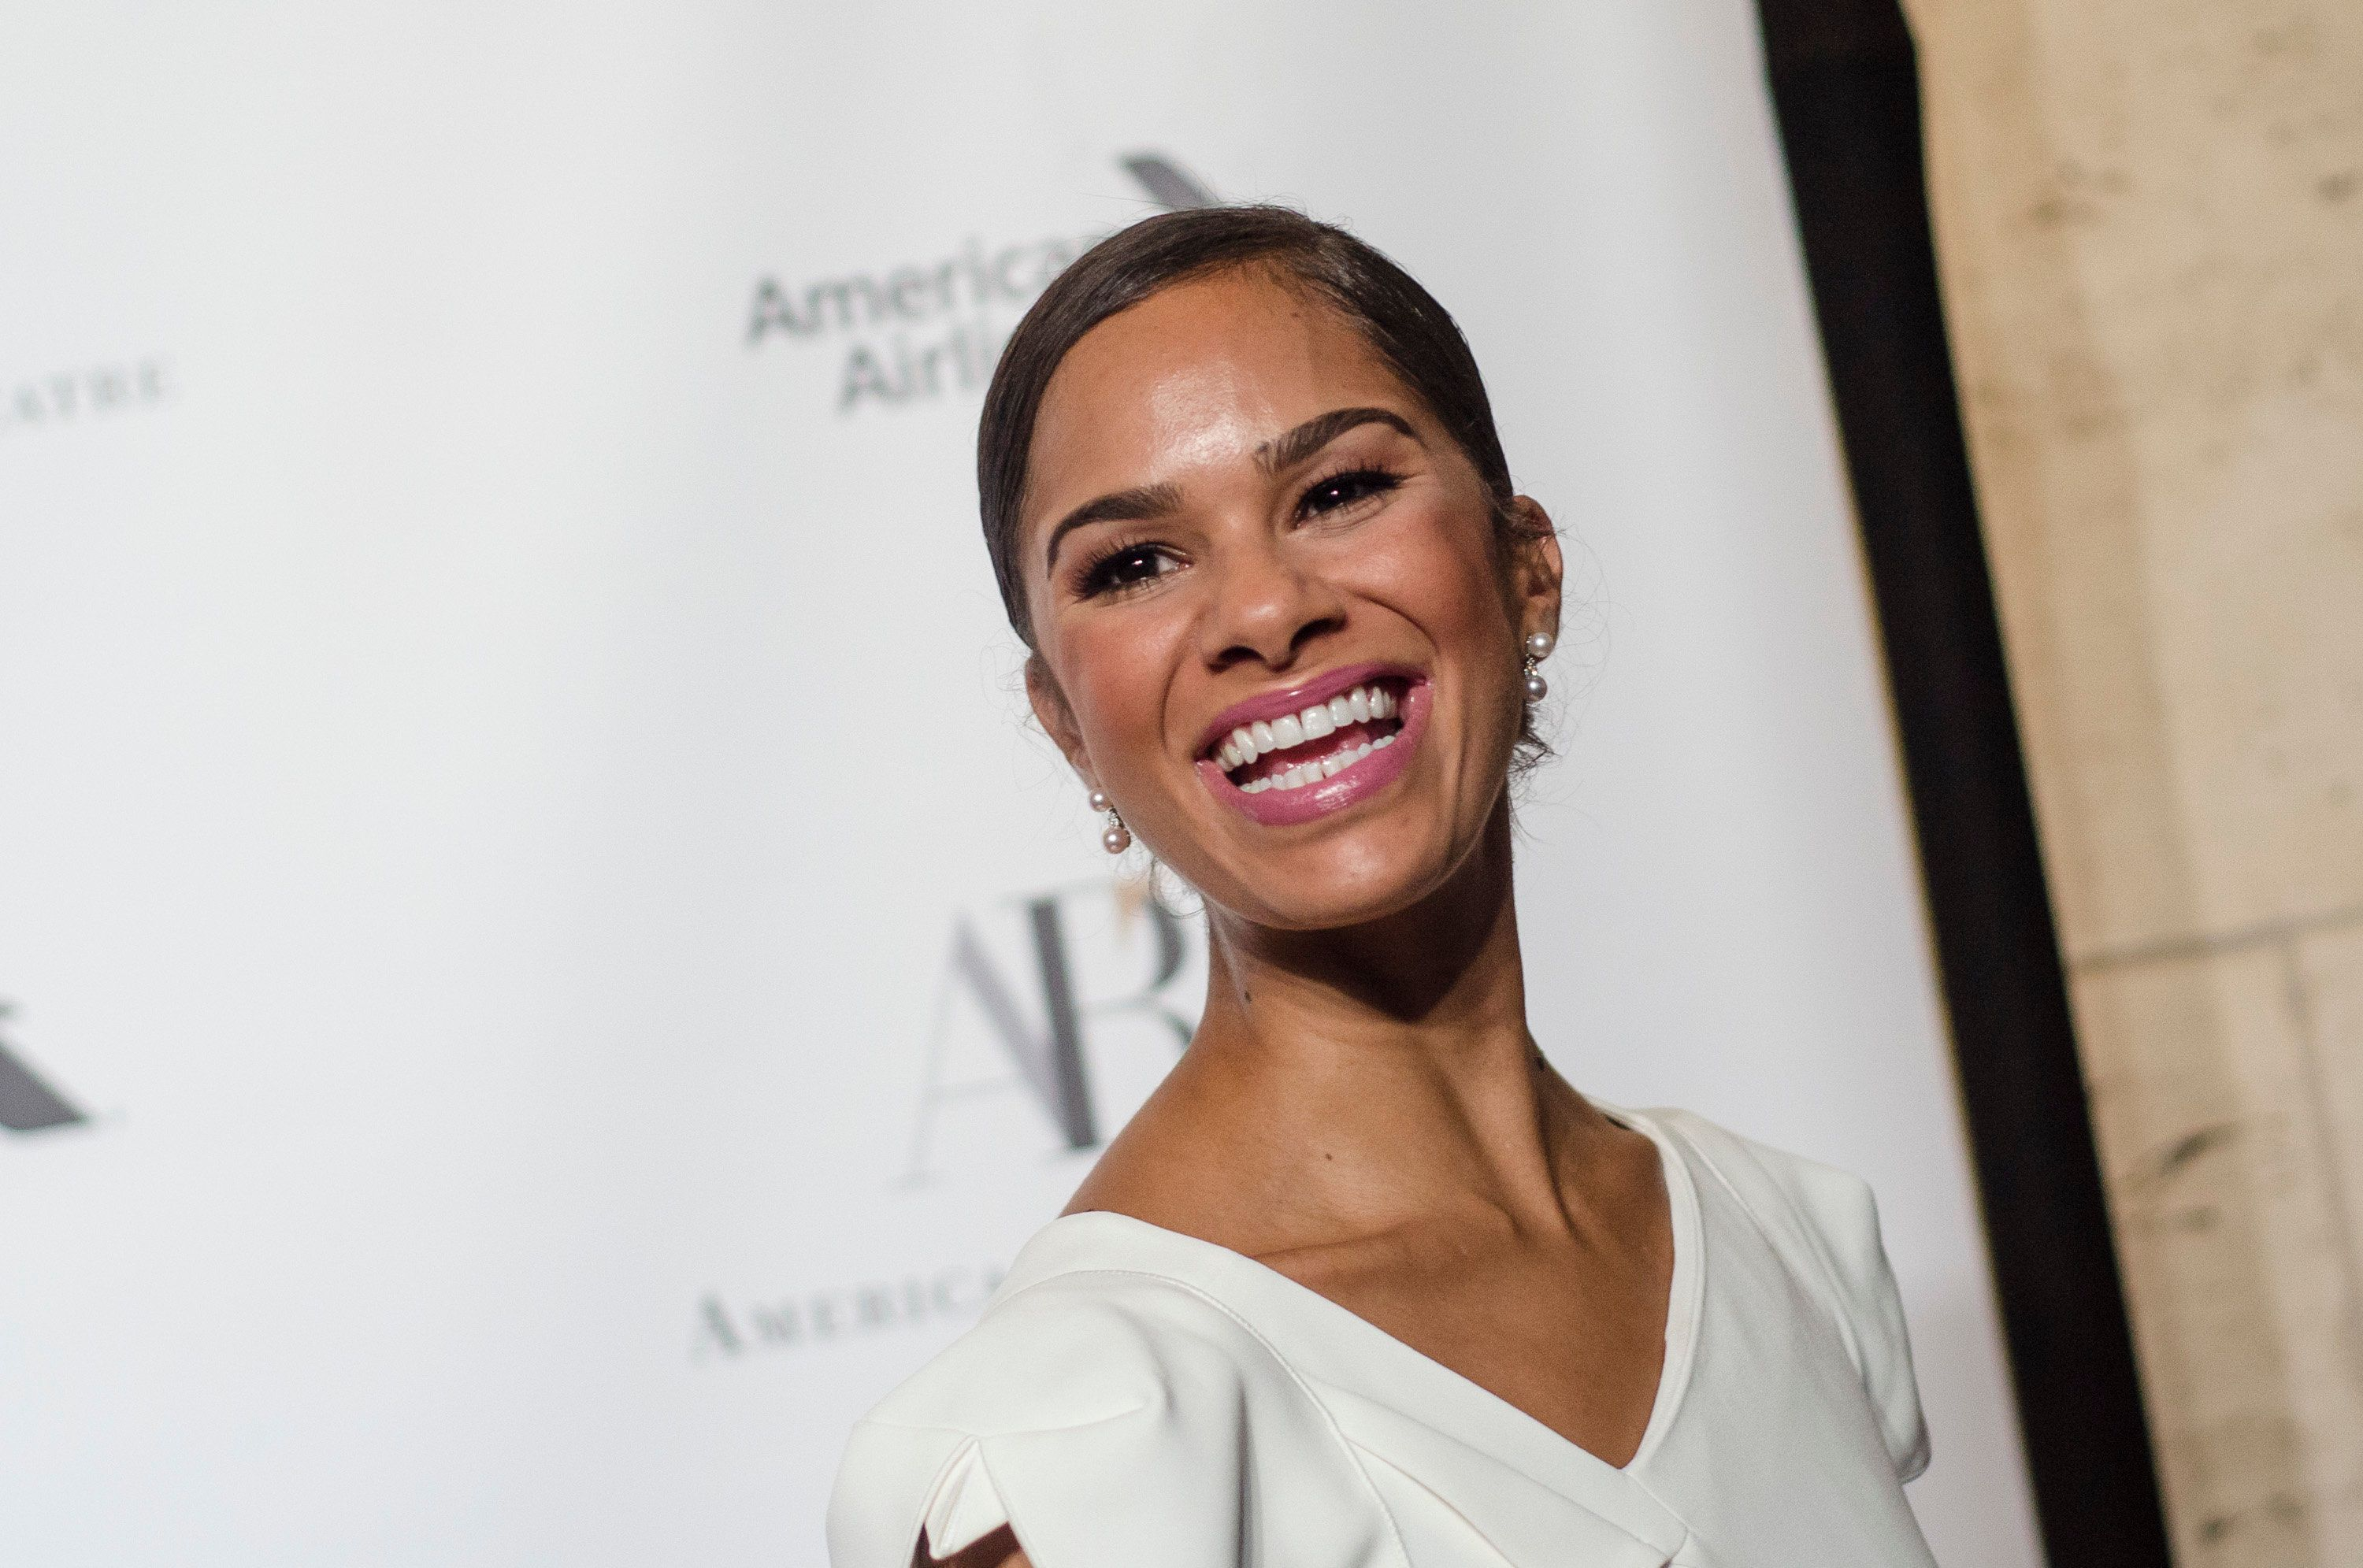 NEW YORK, NY- OCTOBER 20: Dancer Misty Copeland attends the 2016 American Ballet Theatre Fall Gala at the David H. Koch Theater at Lincoln Center on October 20, 2016 in New York City. (Kris Connor/FilmMagic)